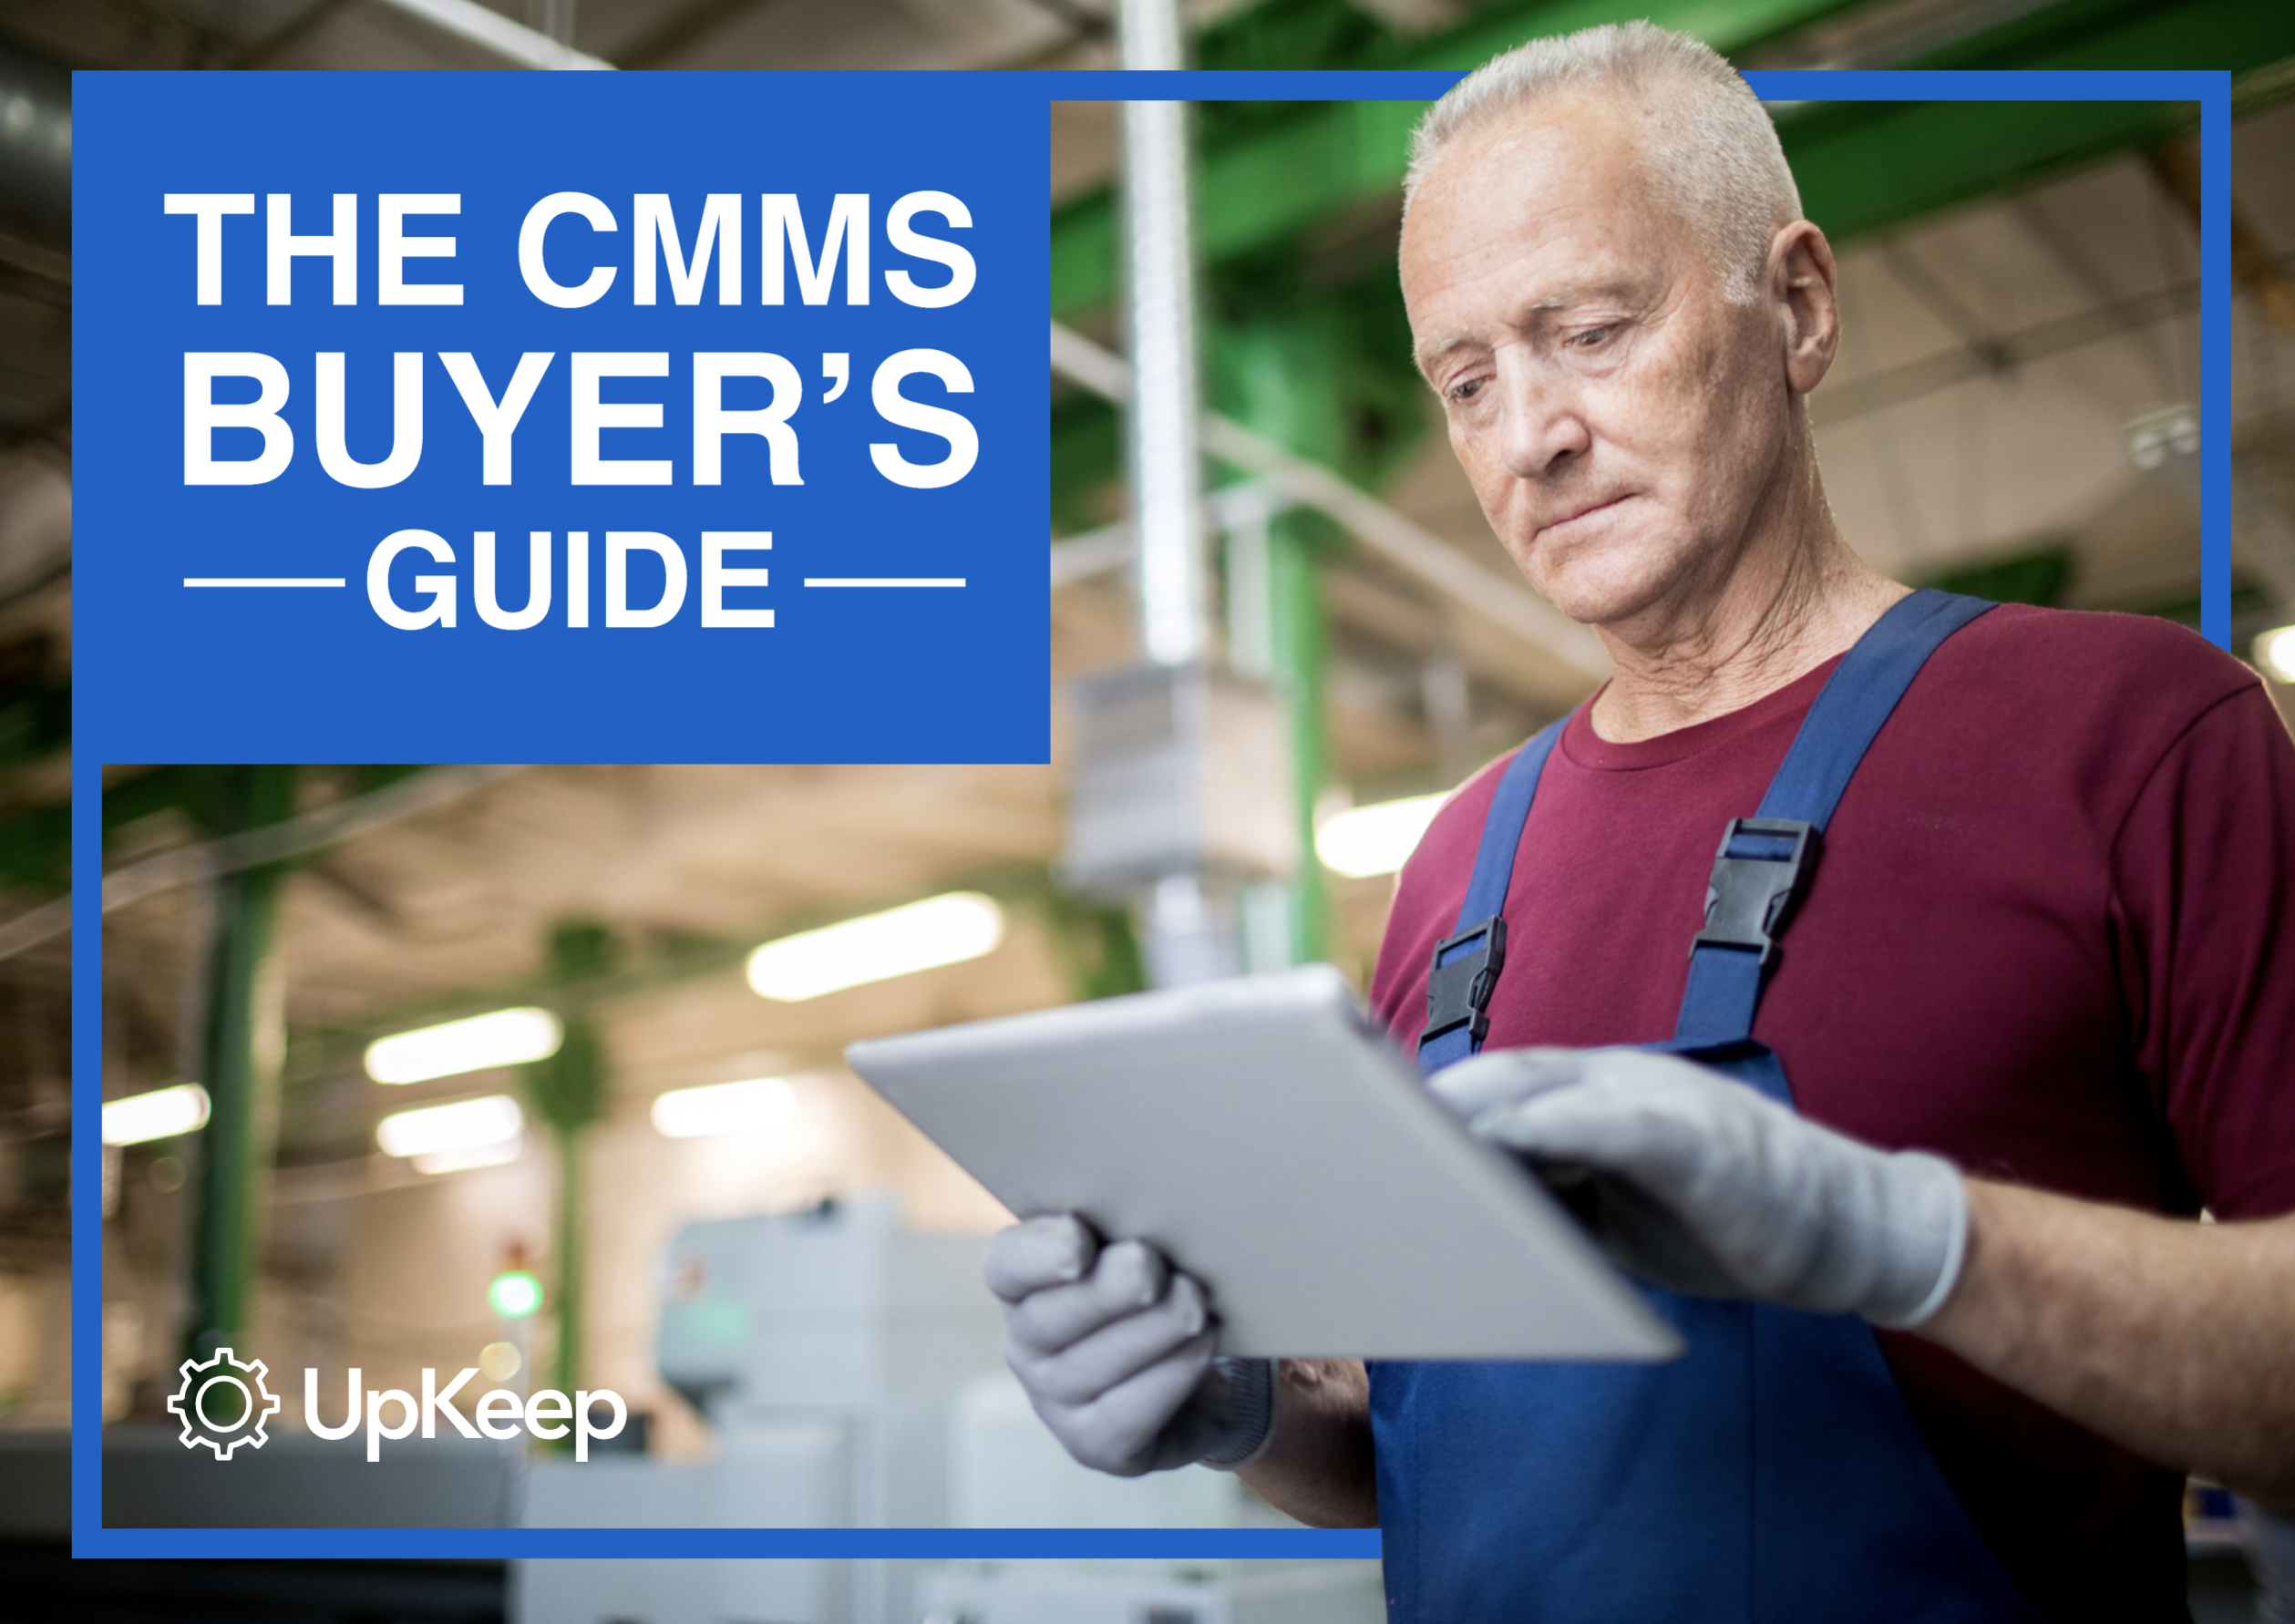 The CMMS Buyer's Guide